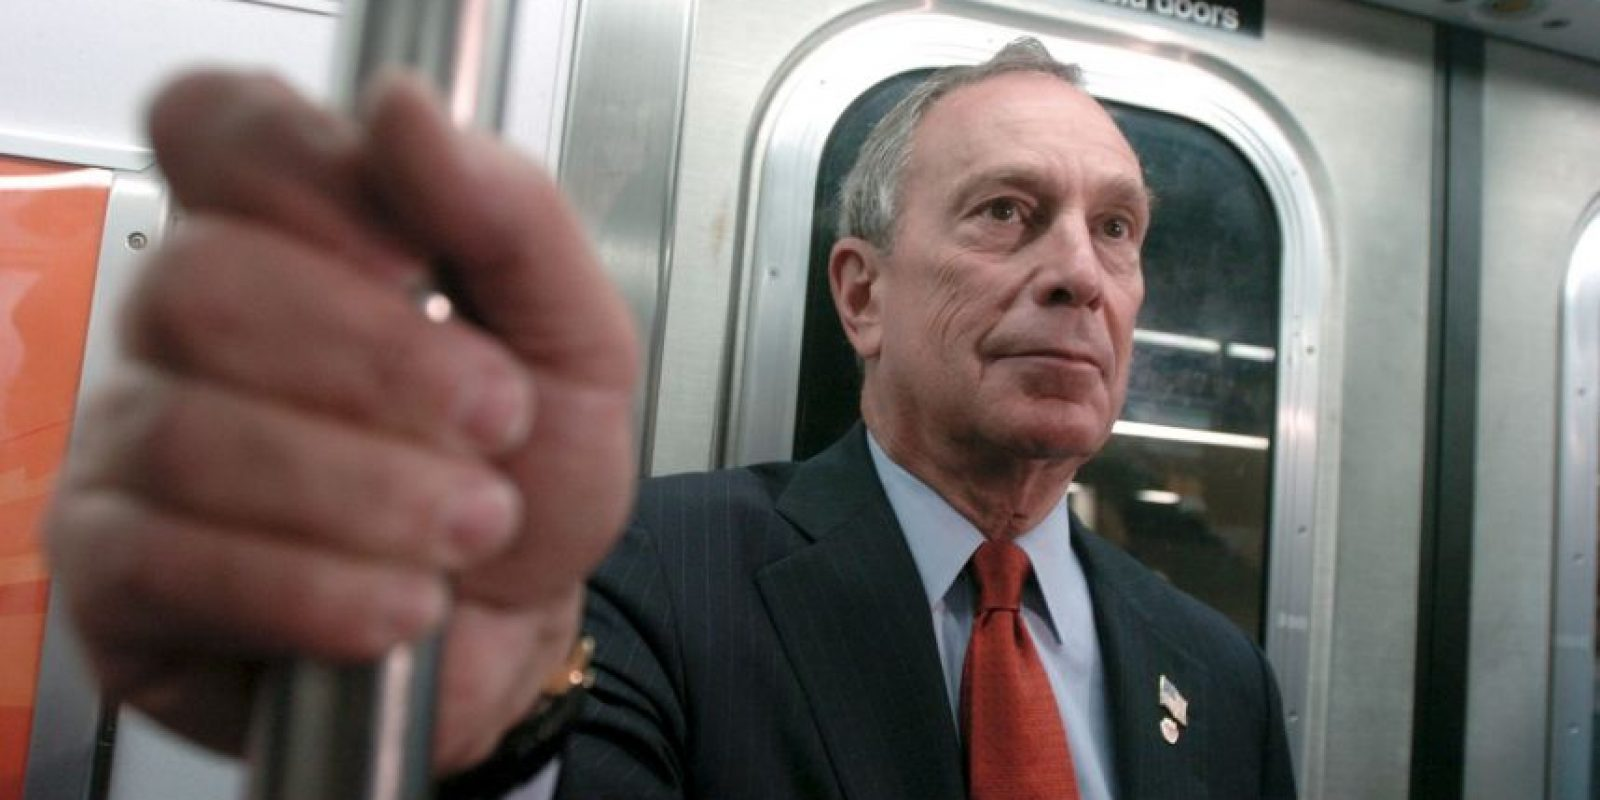 1. Michael Bloomberg Foto: Getty Images